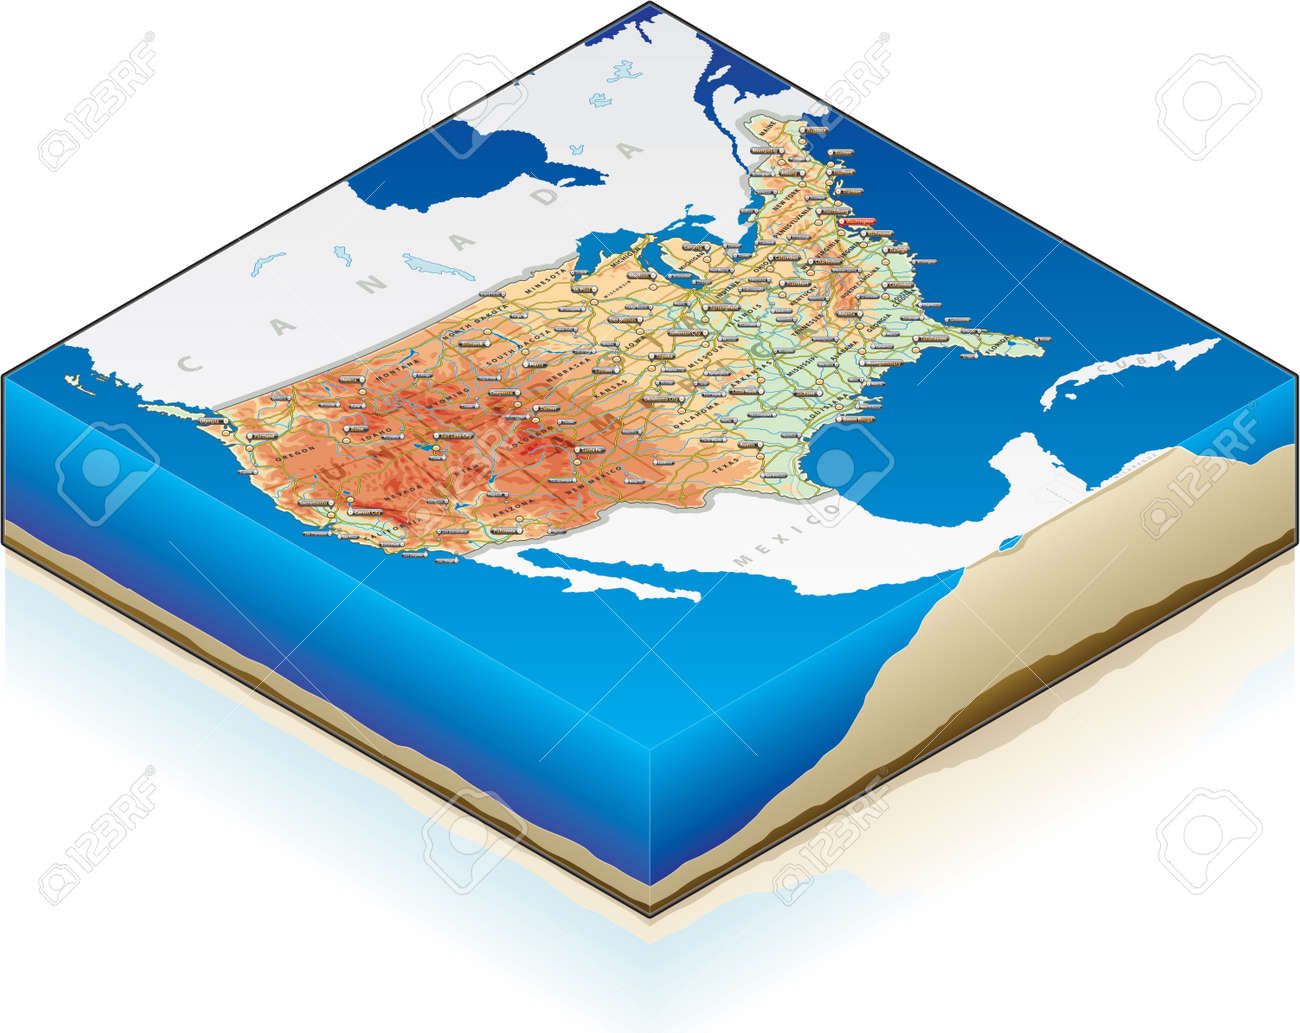 3D Isometric Map Of The United States Of America With Text Stock